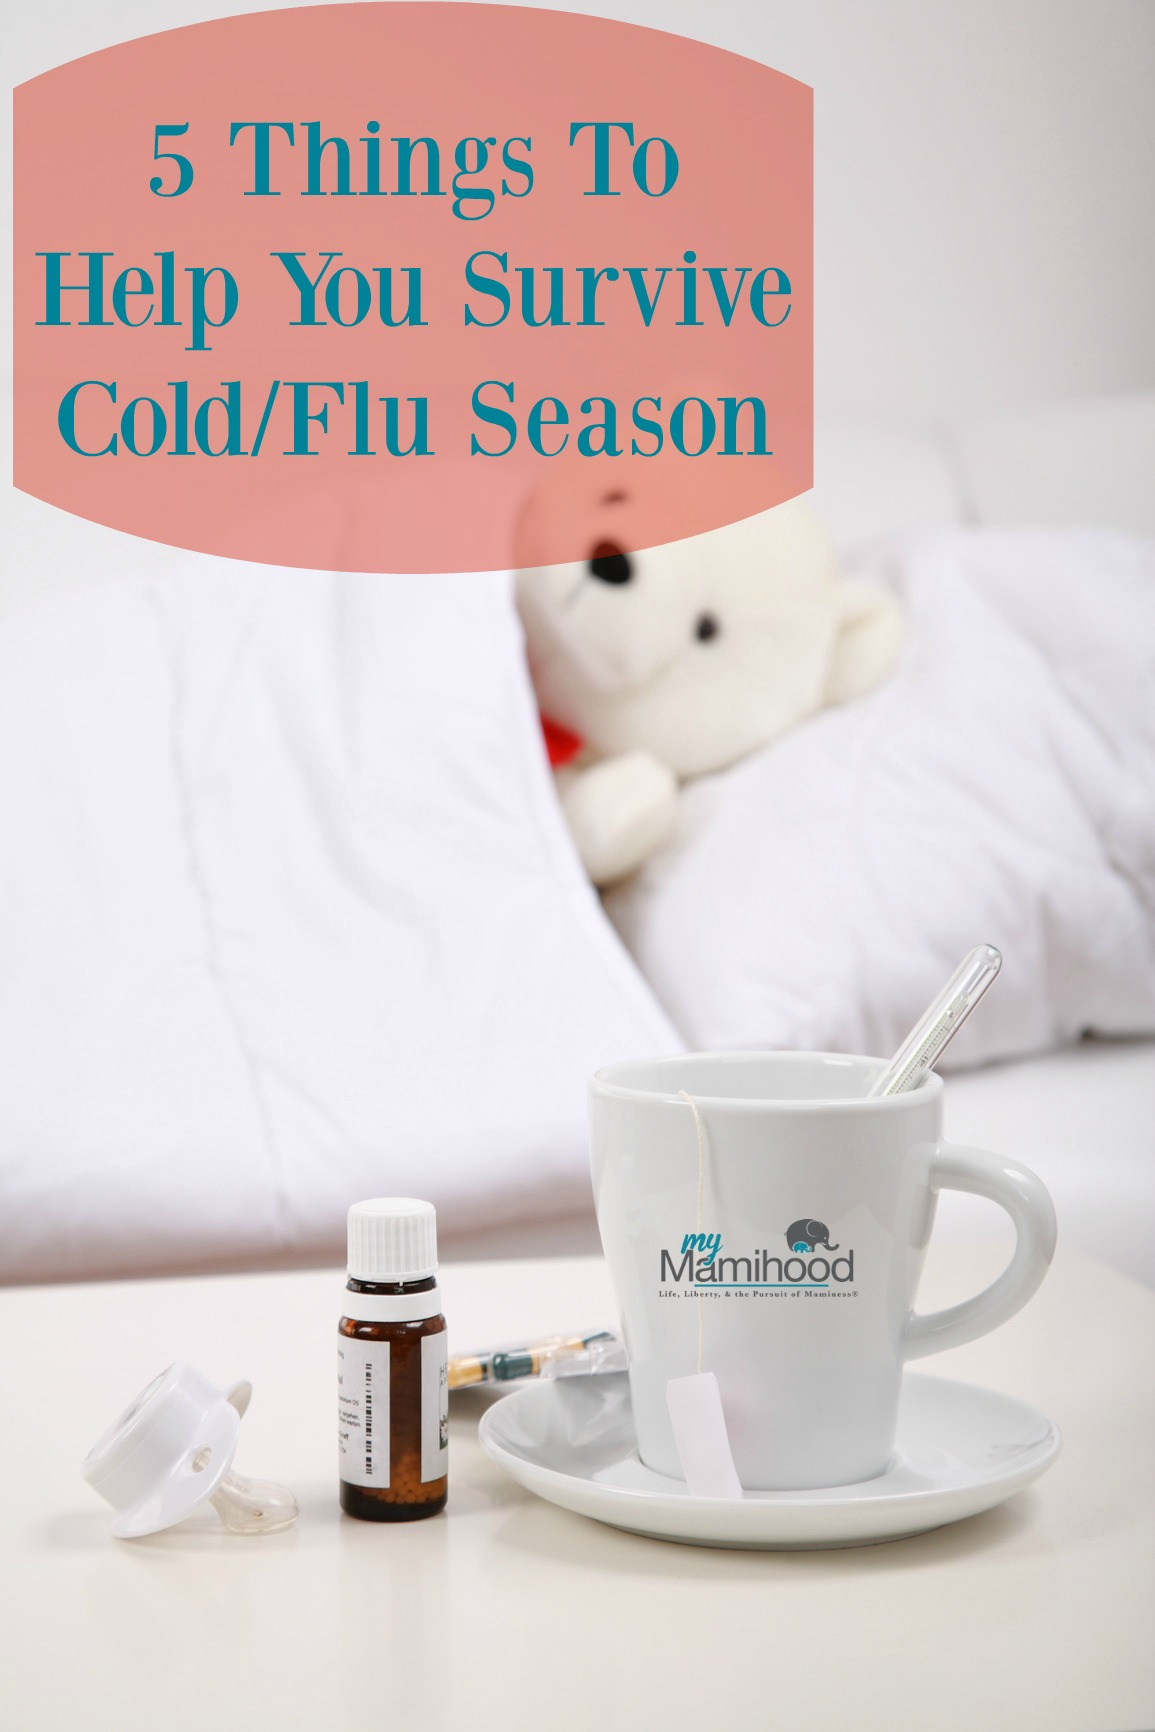 5 Things To Help You Survive Cold/Flu Season